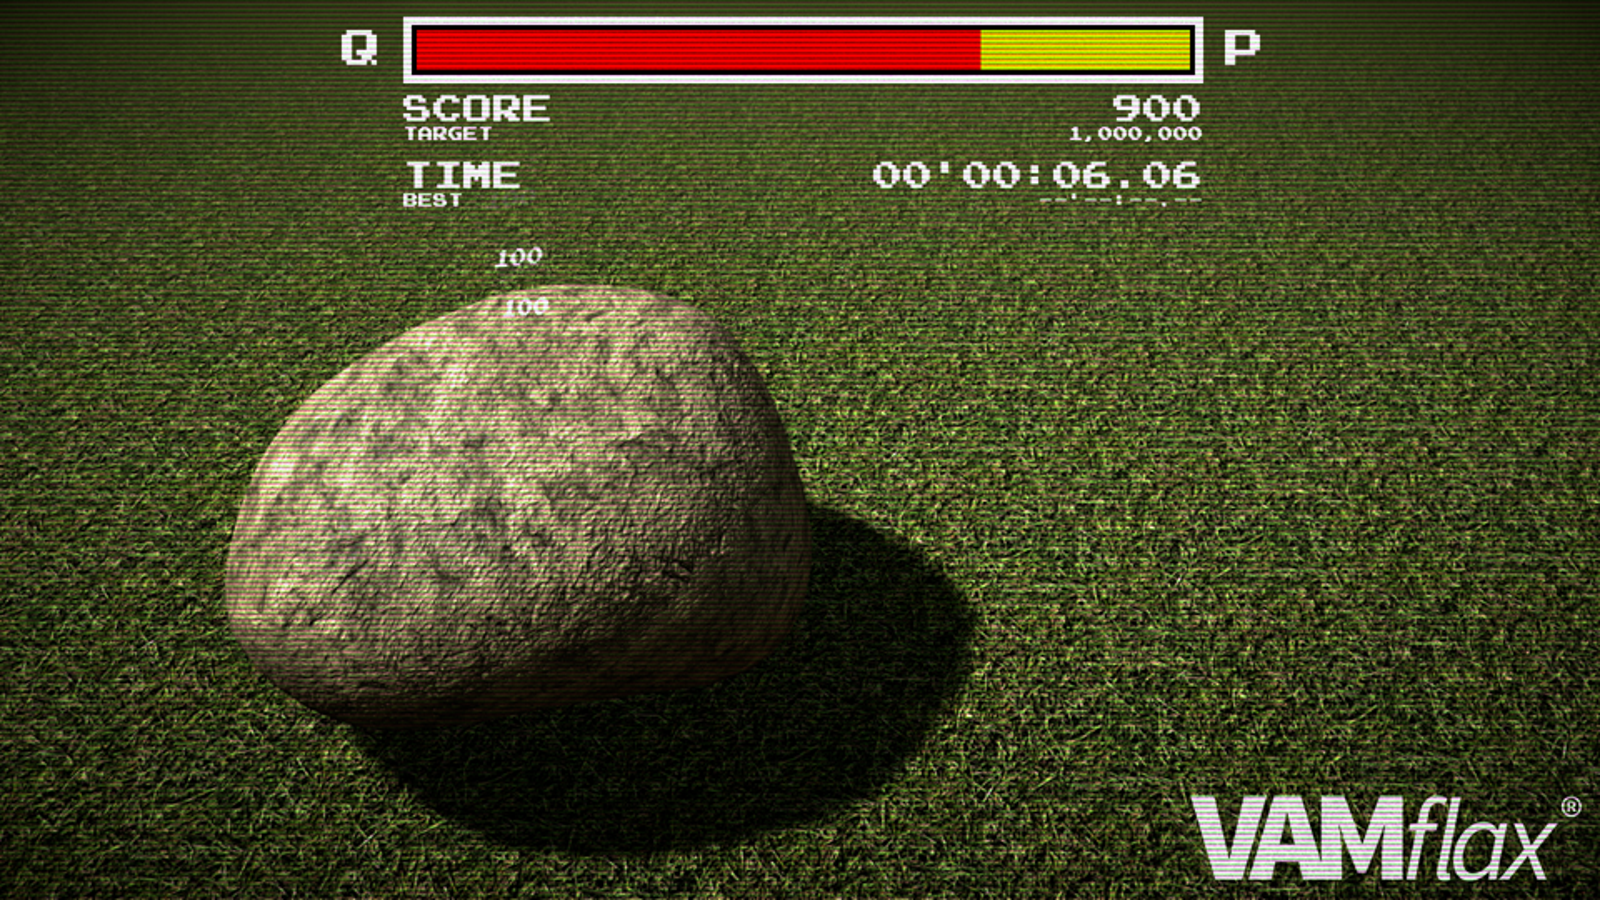 A Rock Simulator Game You Can Play, But It'll Hurt You